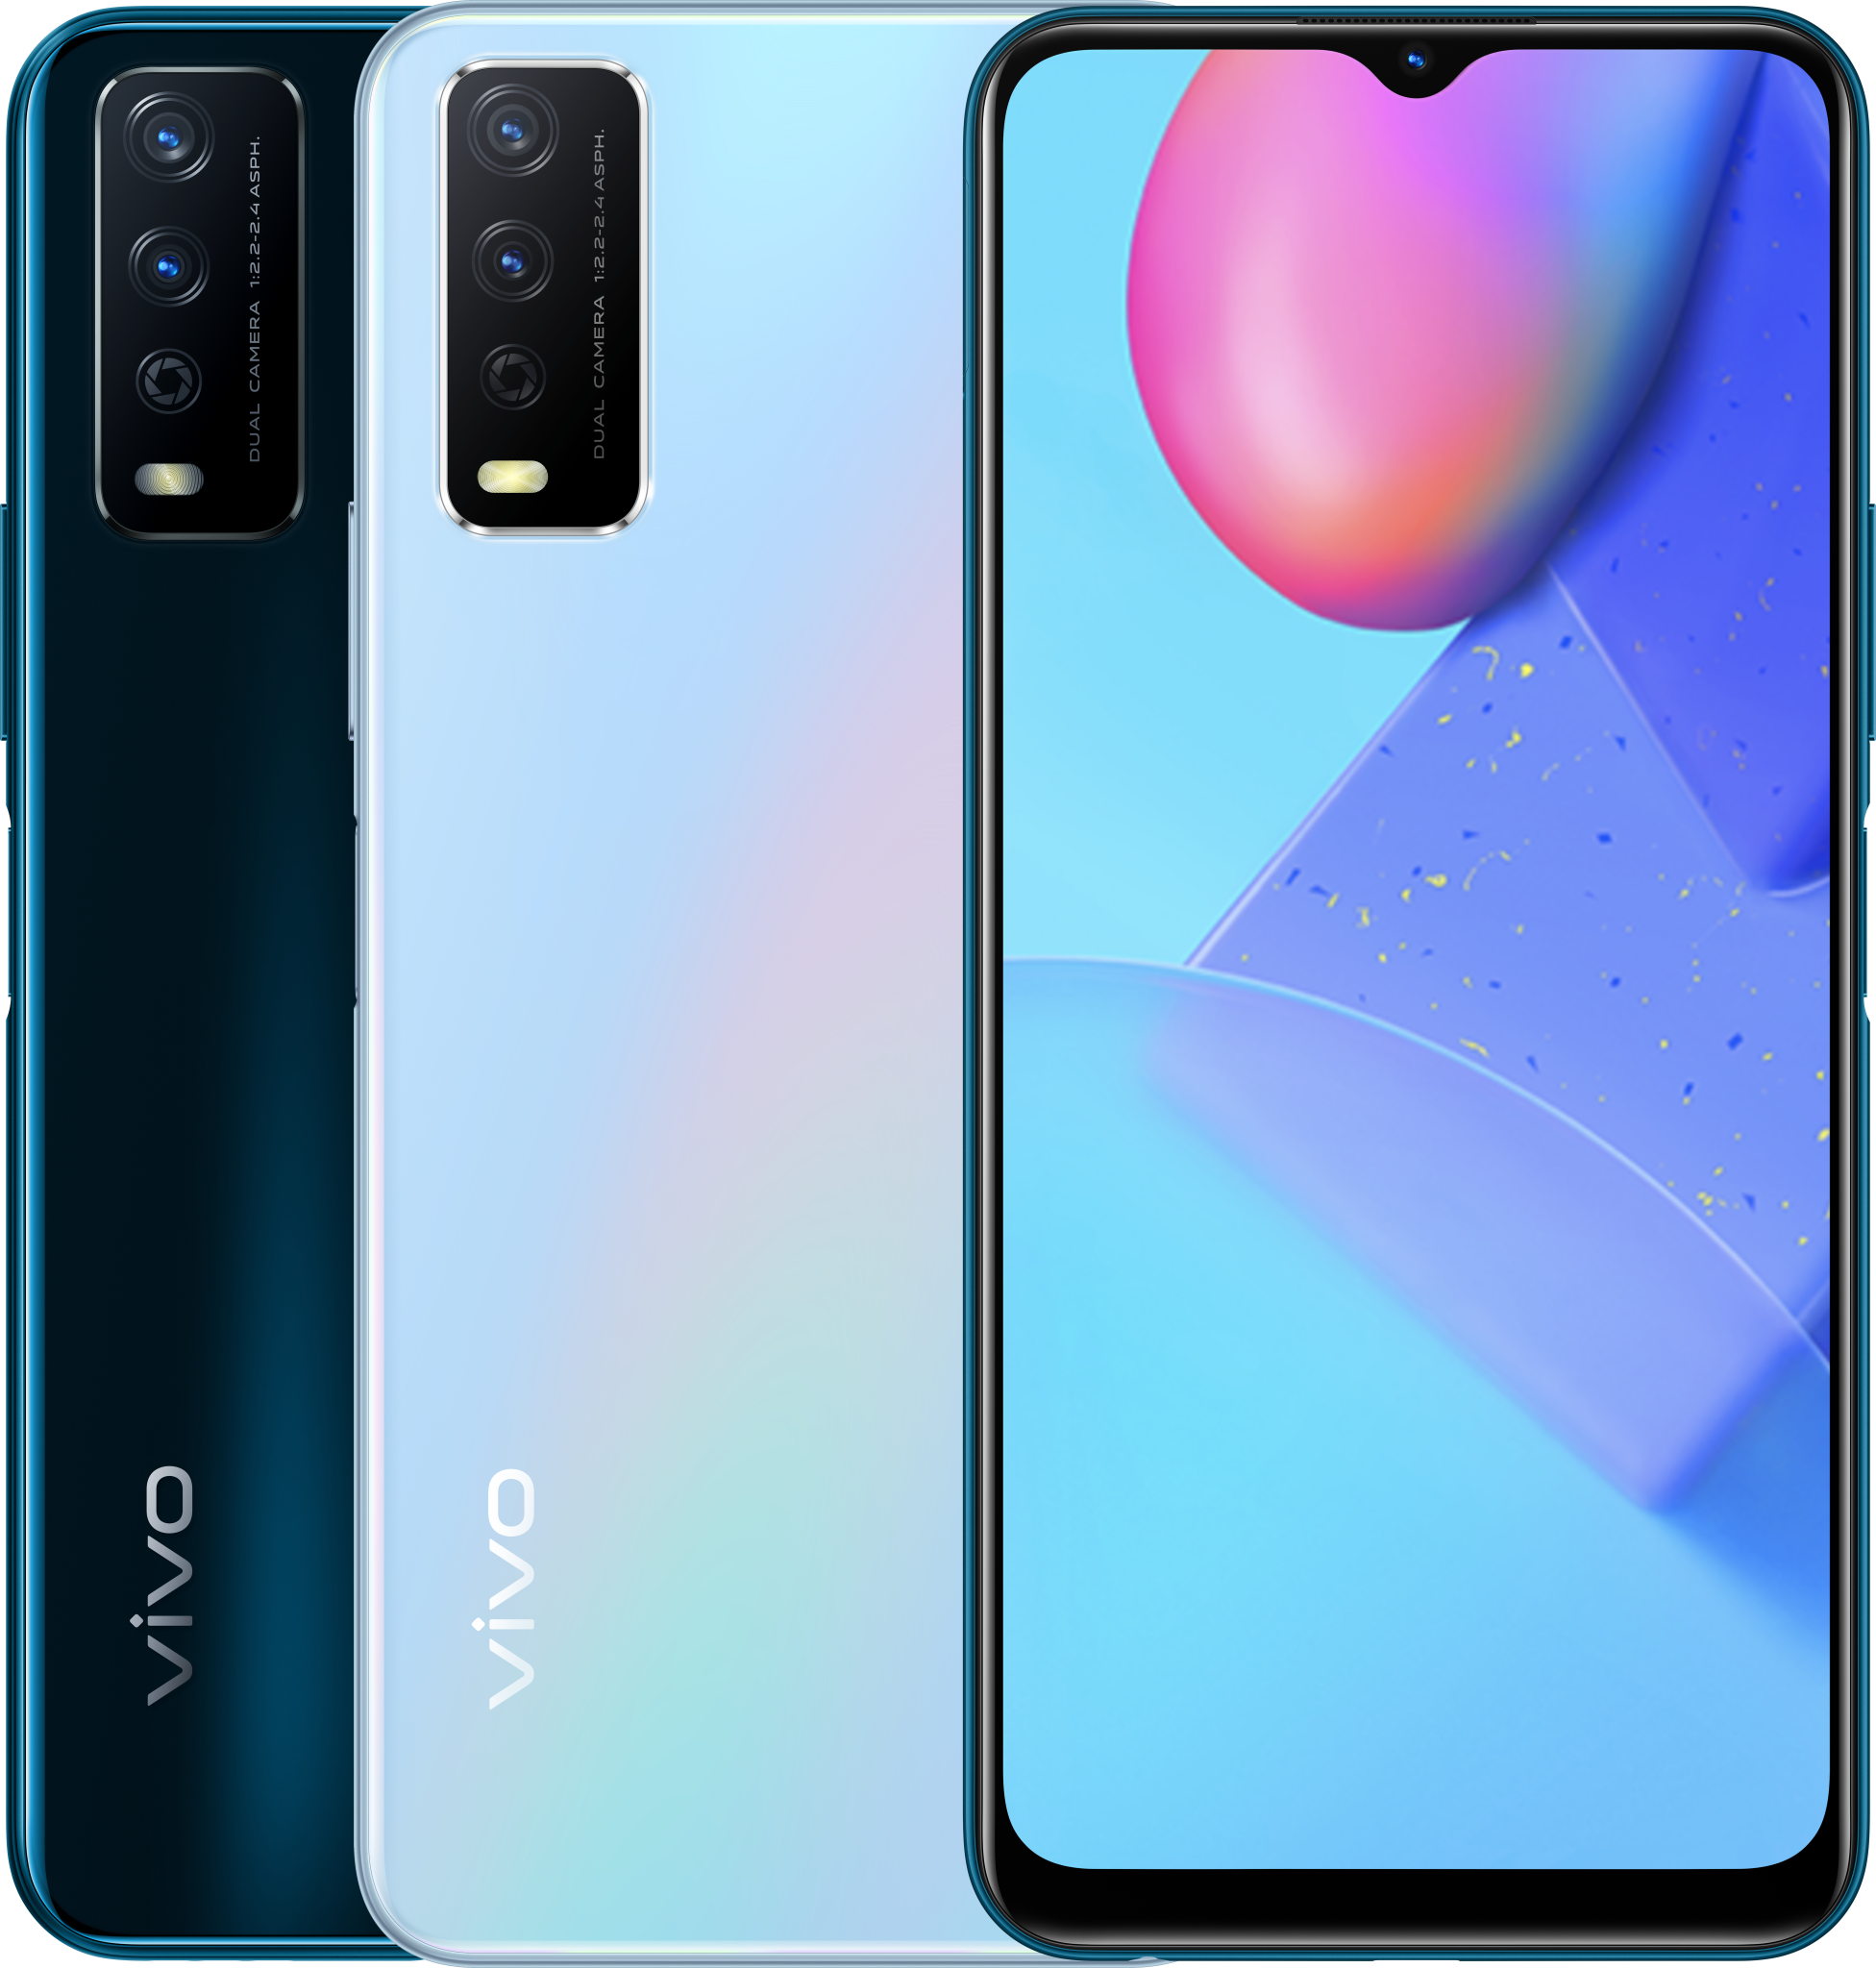 Stylish, powerful battery and other awesome features that you can expect from the new vivo Y12s